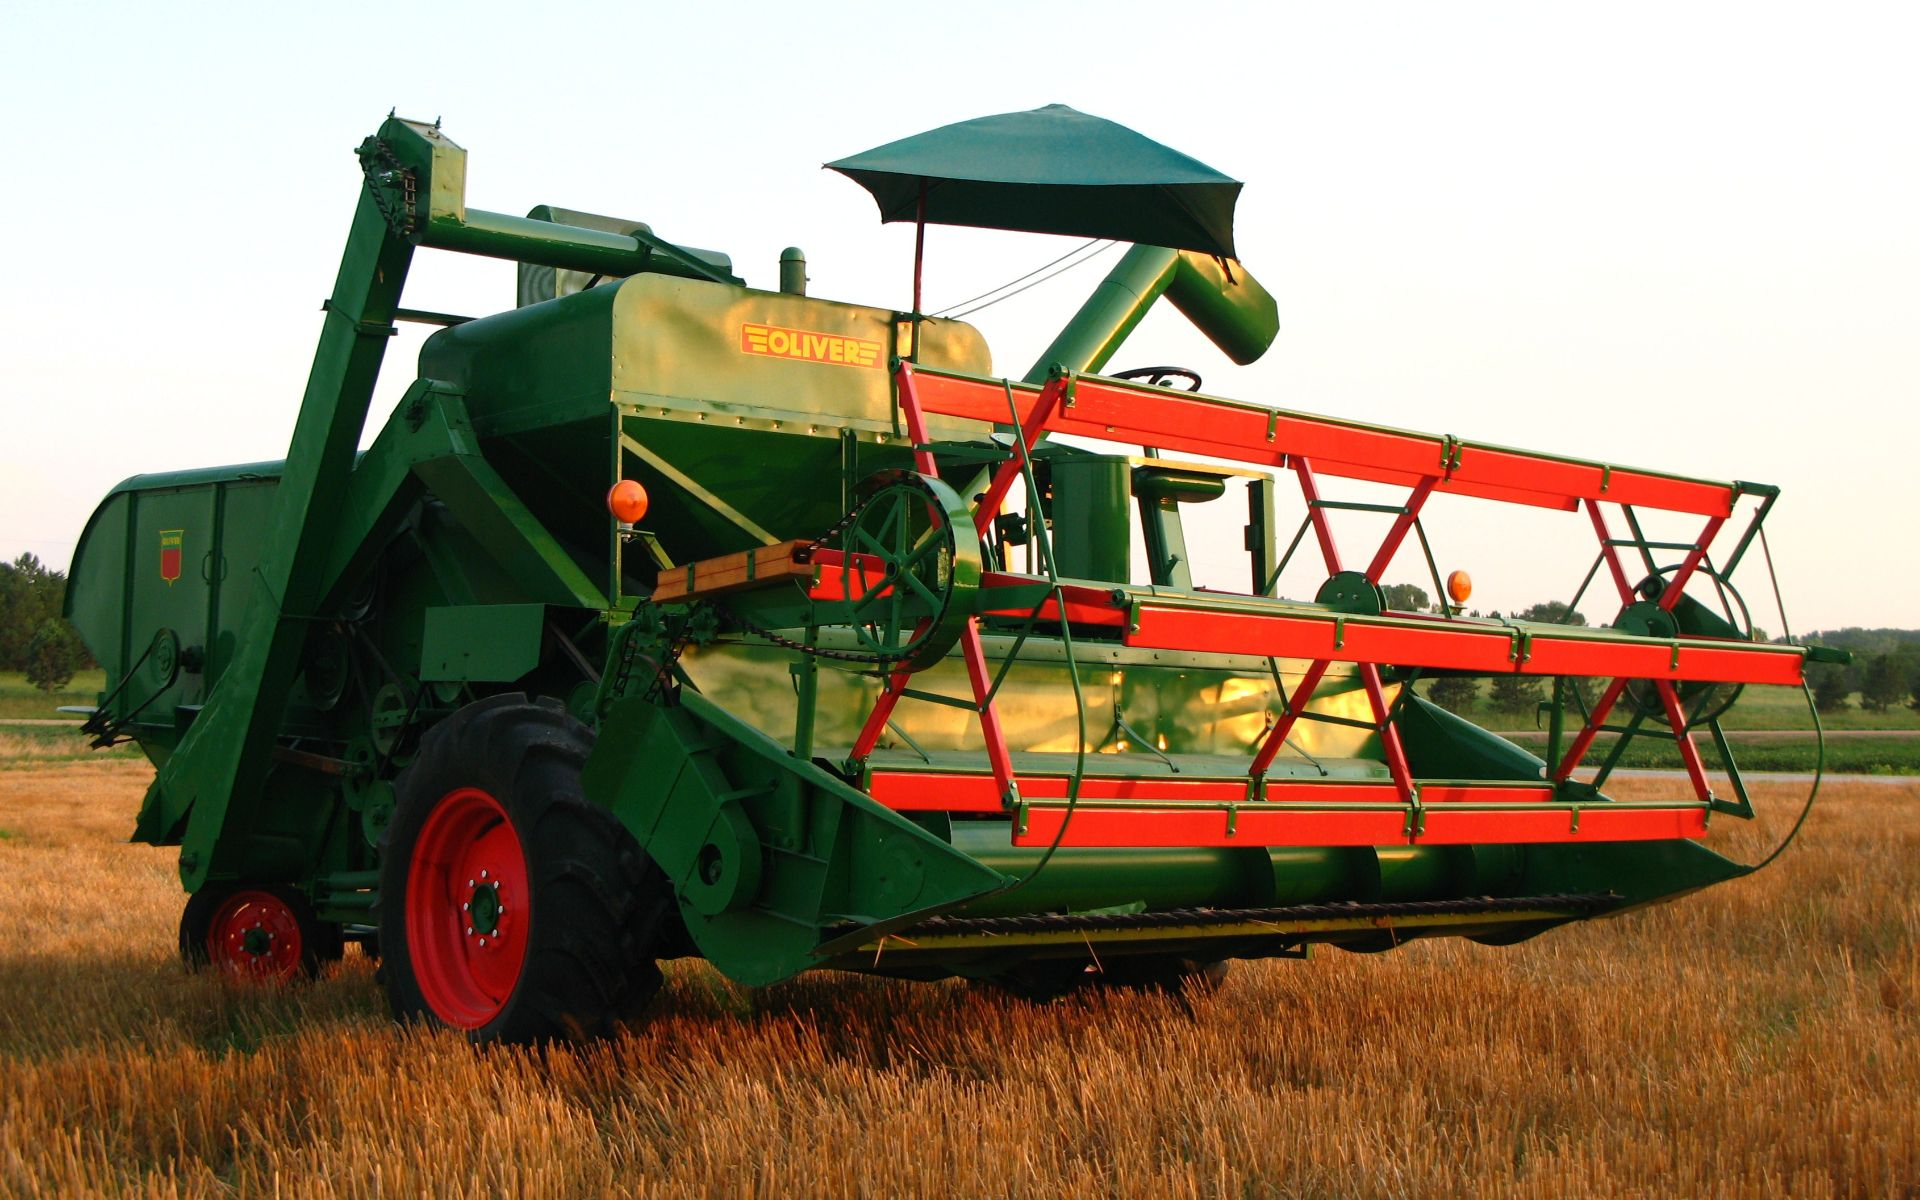 Lot 3 - Mdl.33 S#304406, Grain Master Self Propelled Combine, Runs (painted inside & out!)